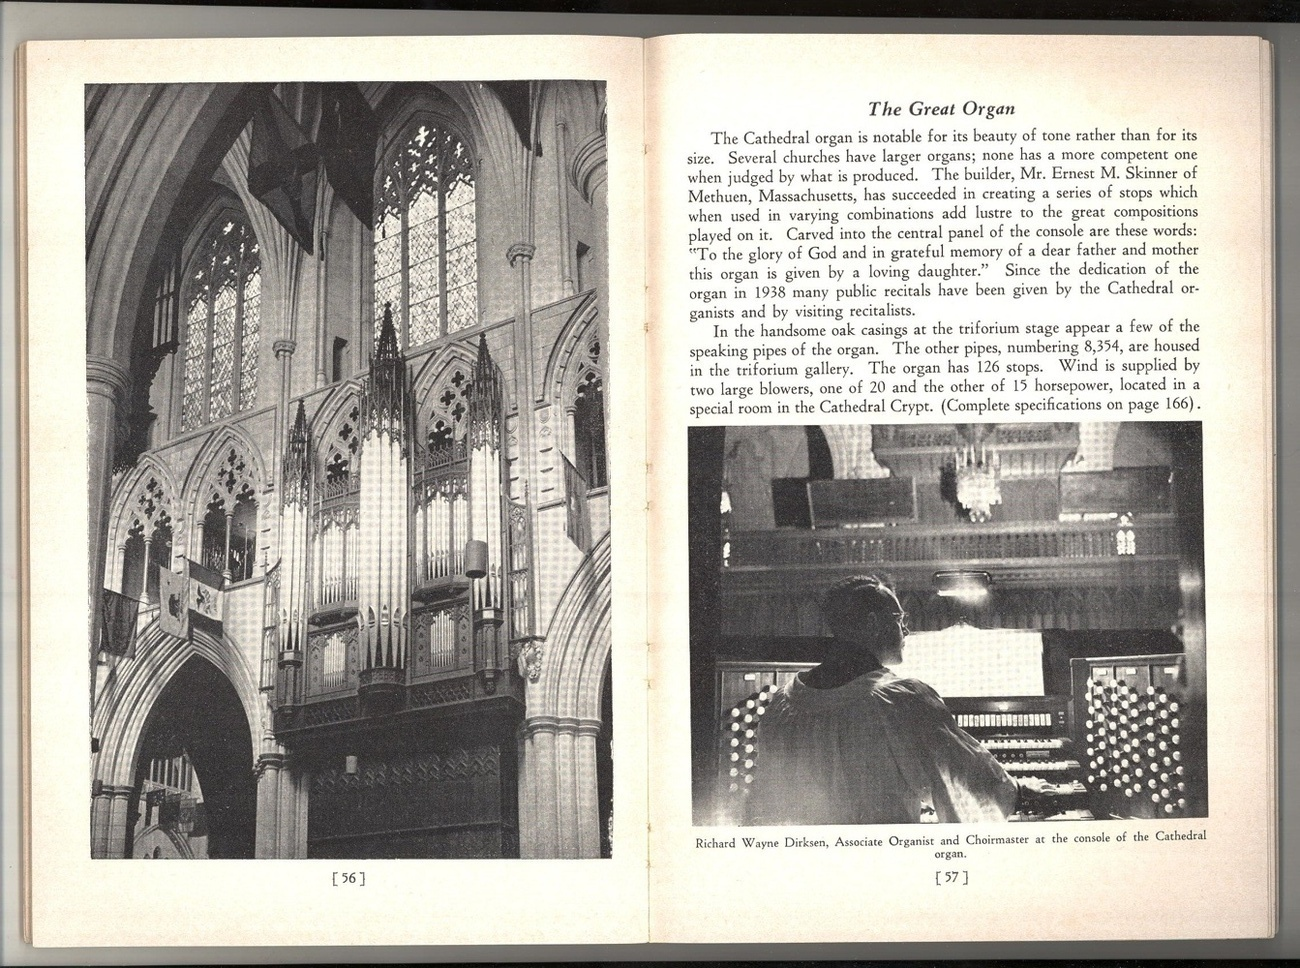 Guide Washington Cathedral guide book vintage 1953 art staine glass windows